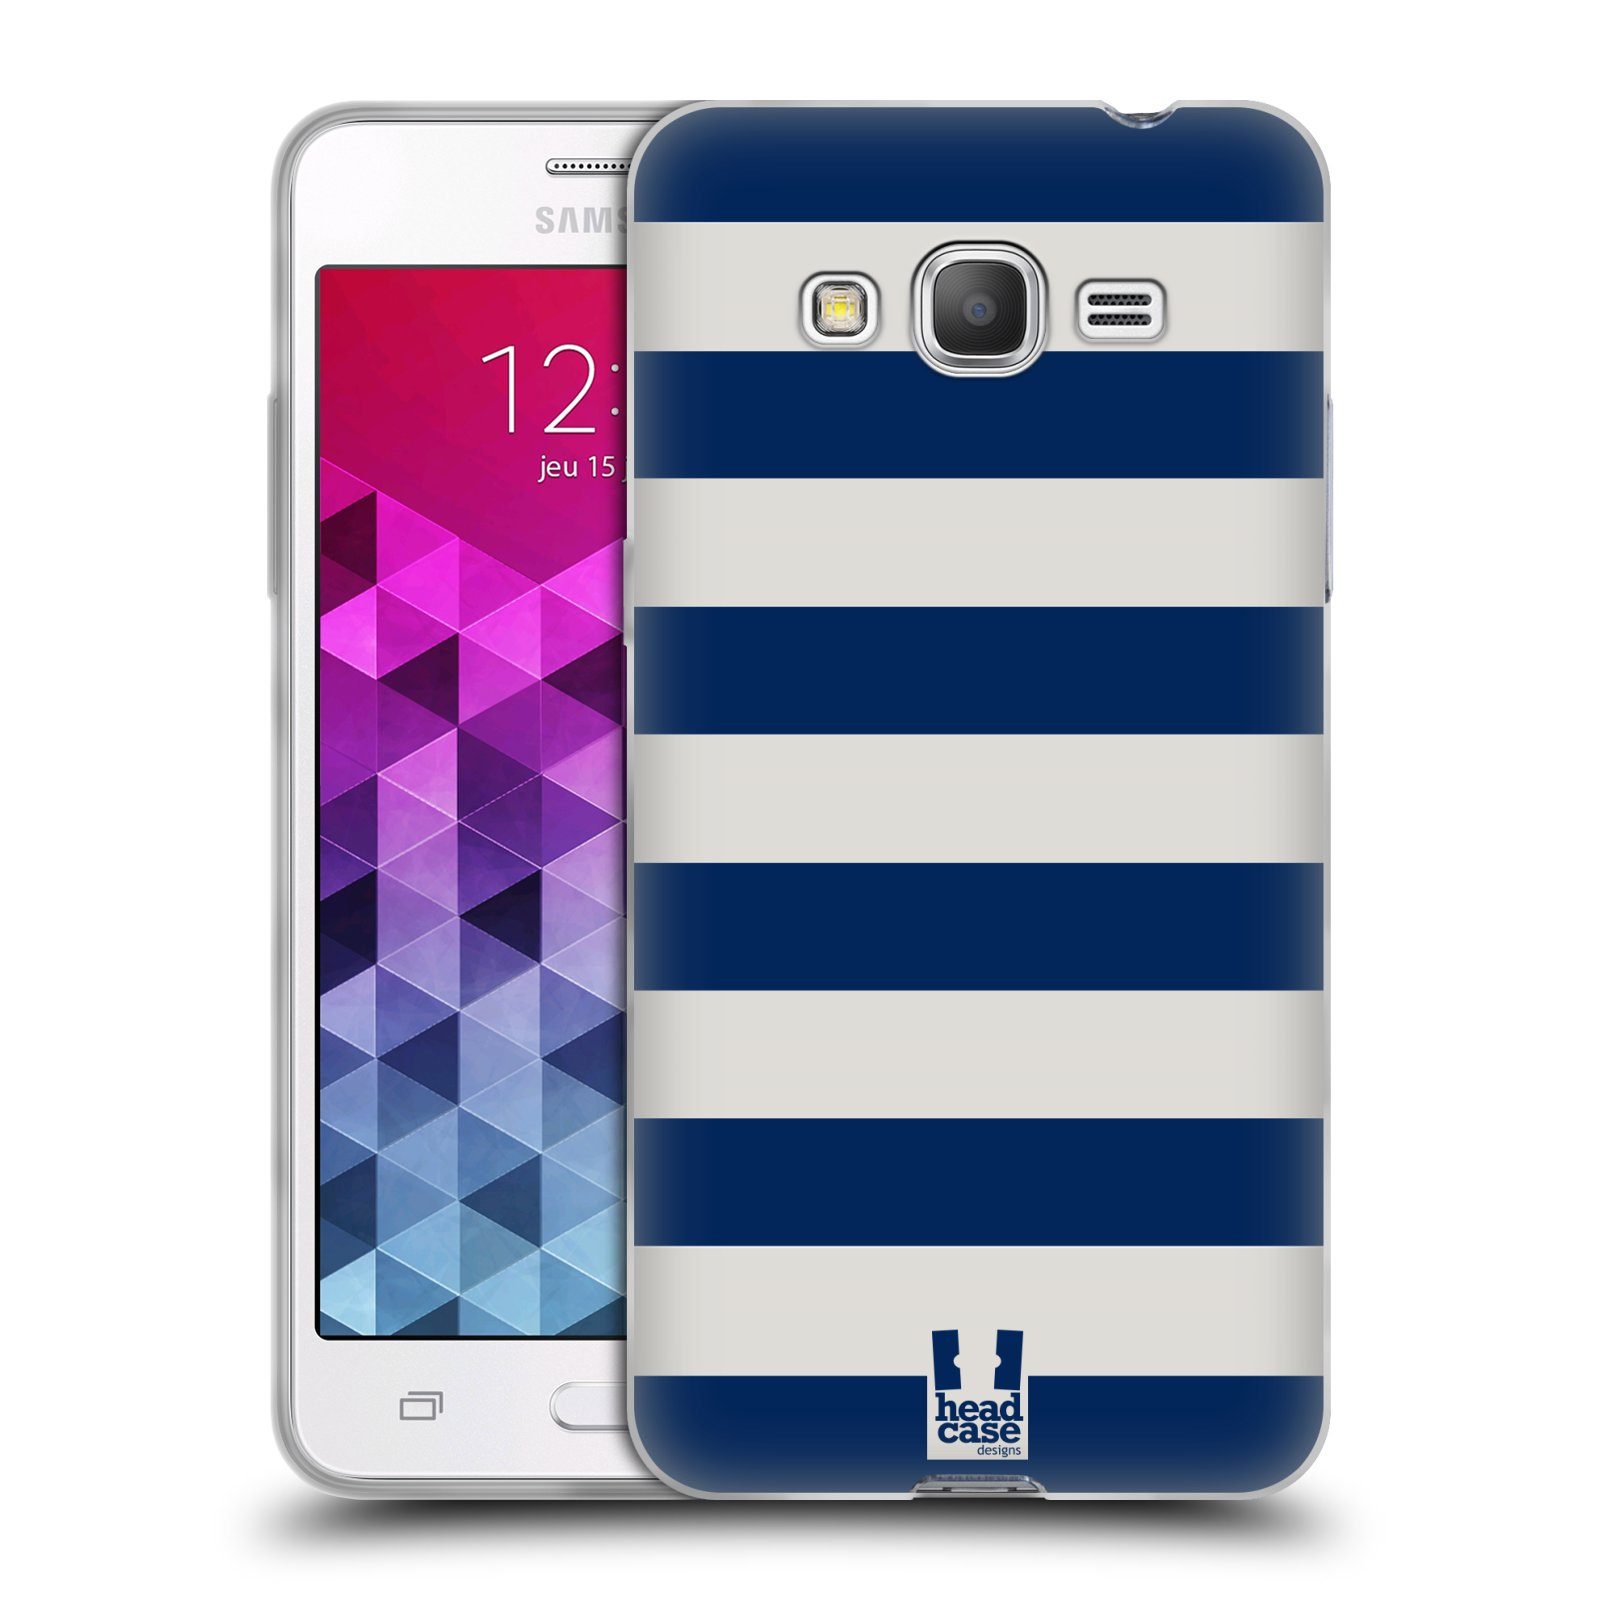 HEAD CASE STRIPES COLLECTION 1 GEL CASE FOR SAMSUNG GALAXY GRAND PRIME 3G DUOS